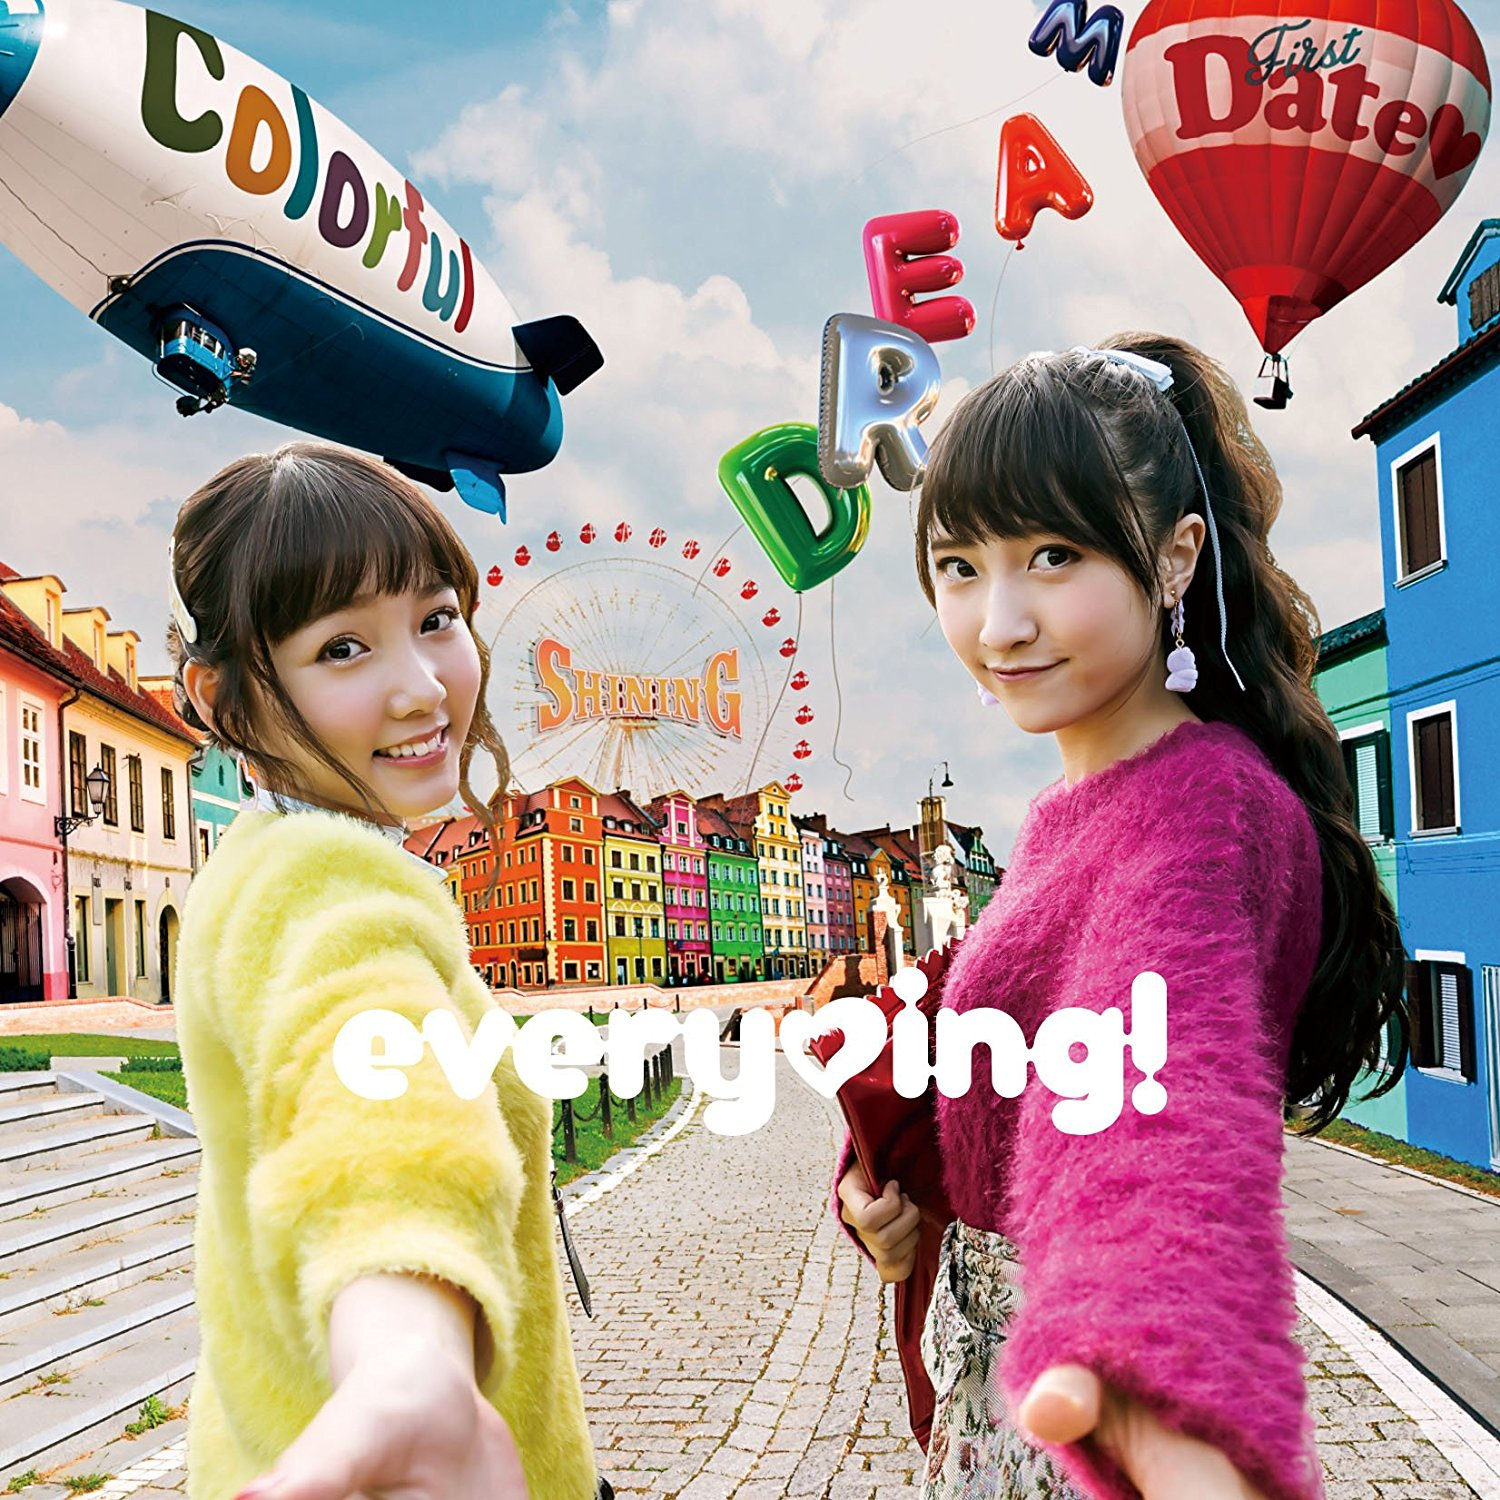 every♥ing!『Colorful Shining Dream First Date』